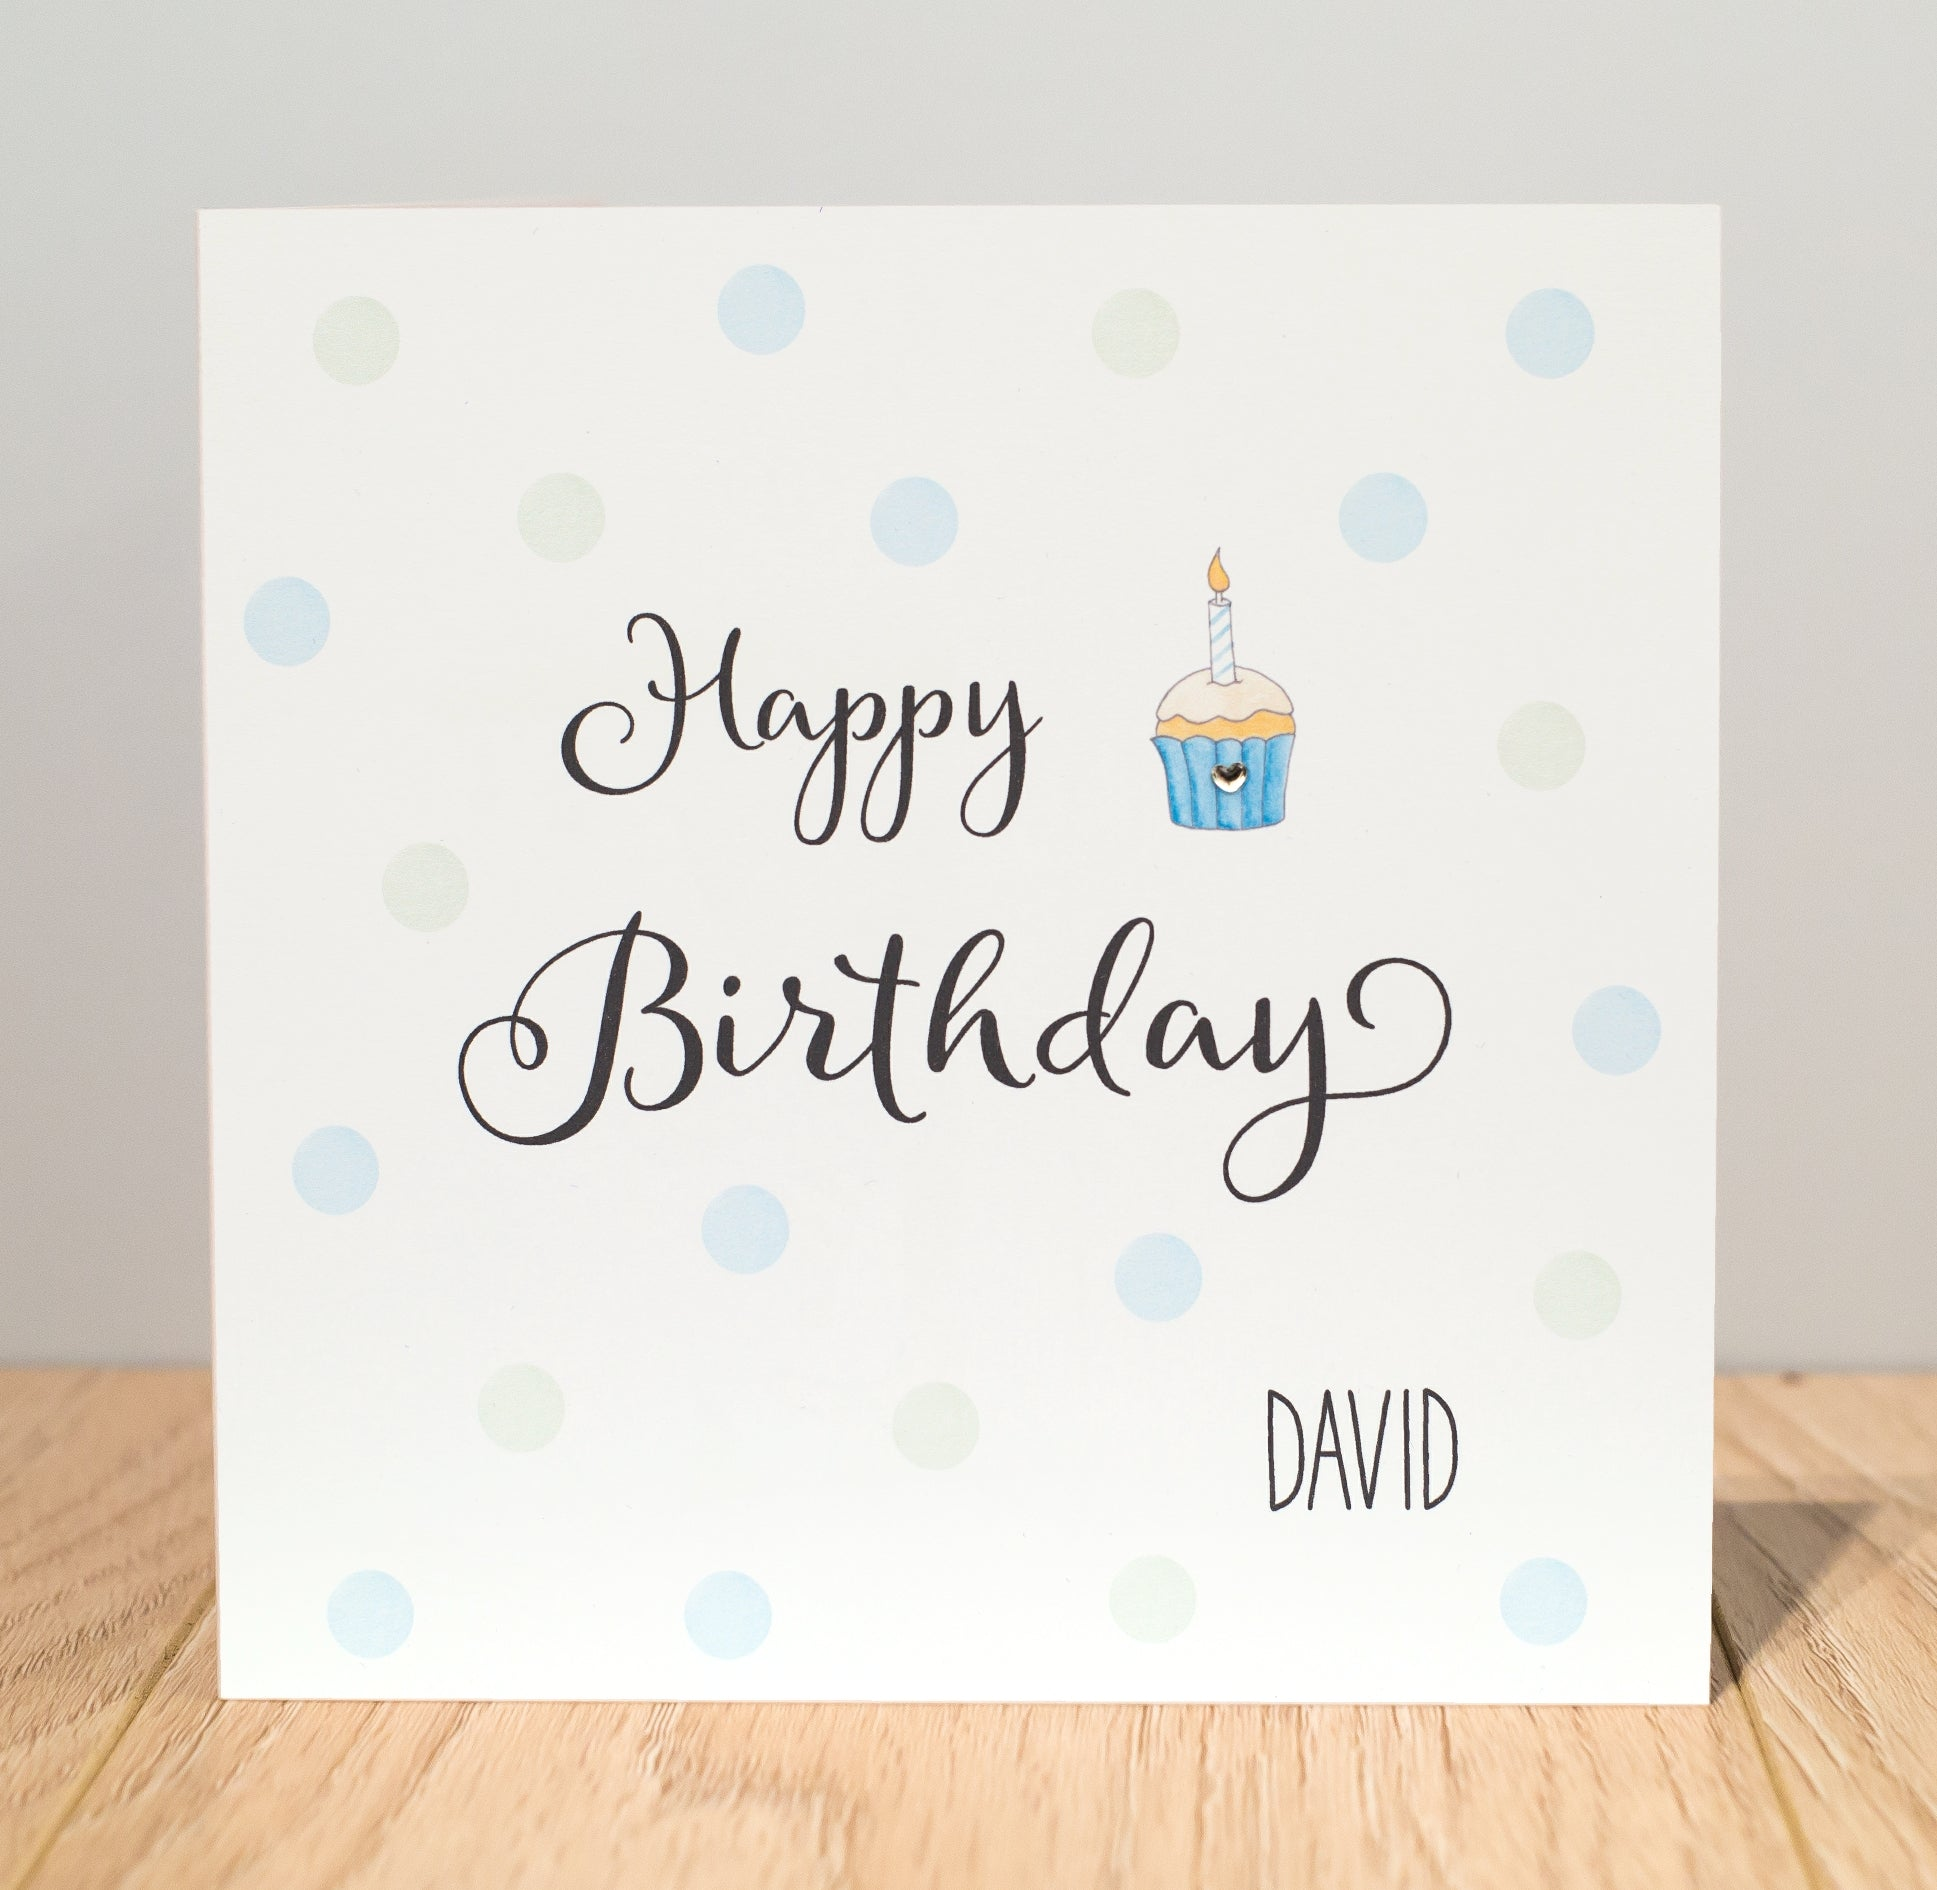 Personalised Birthday Card – Birthday Cup Cake